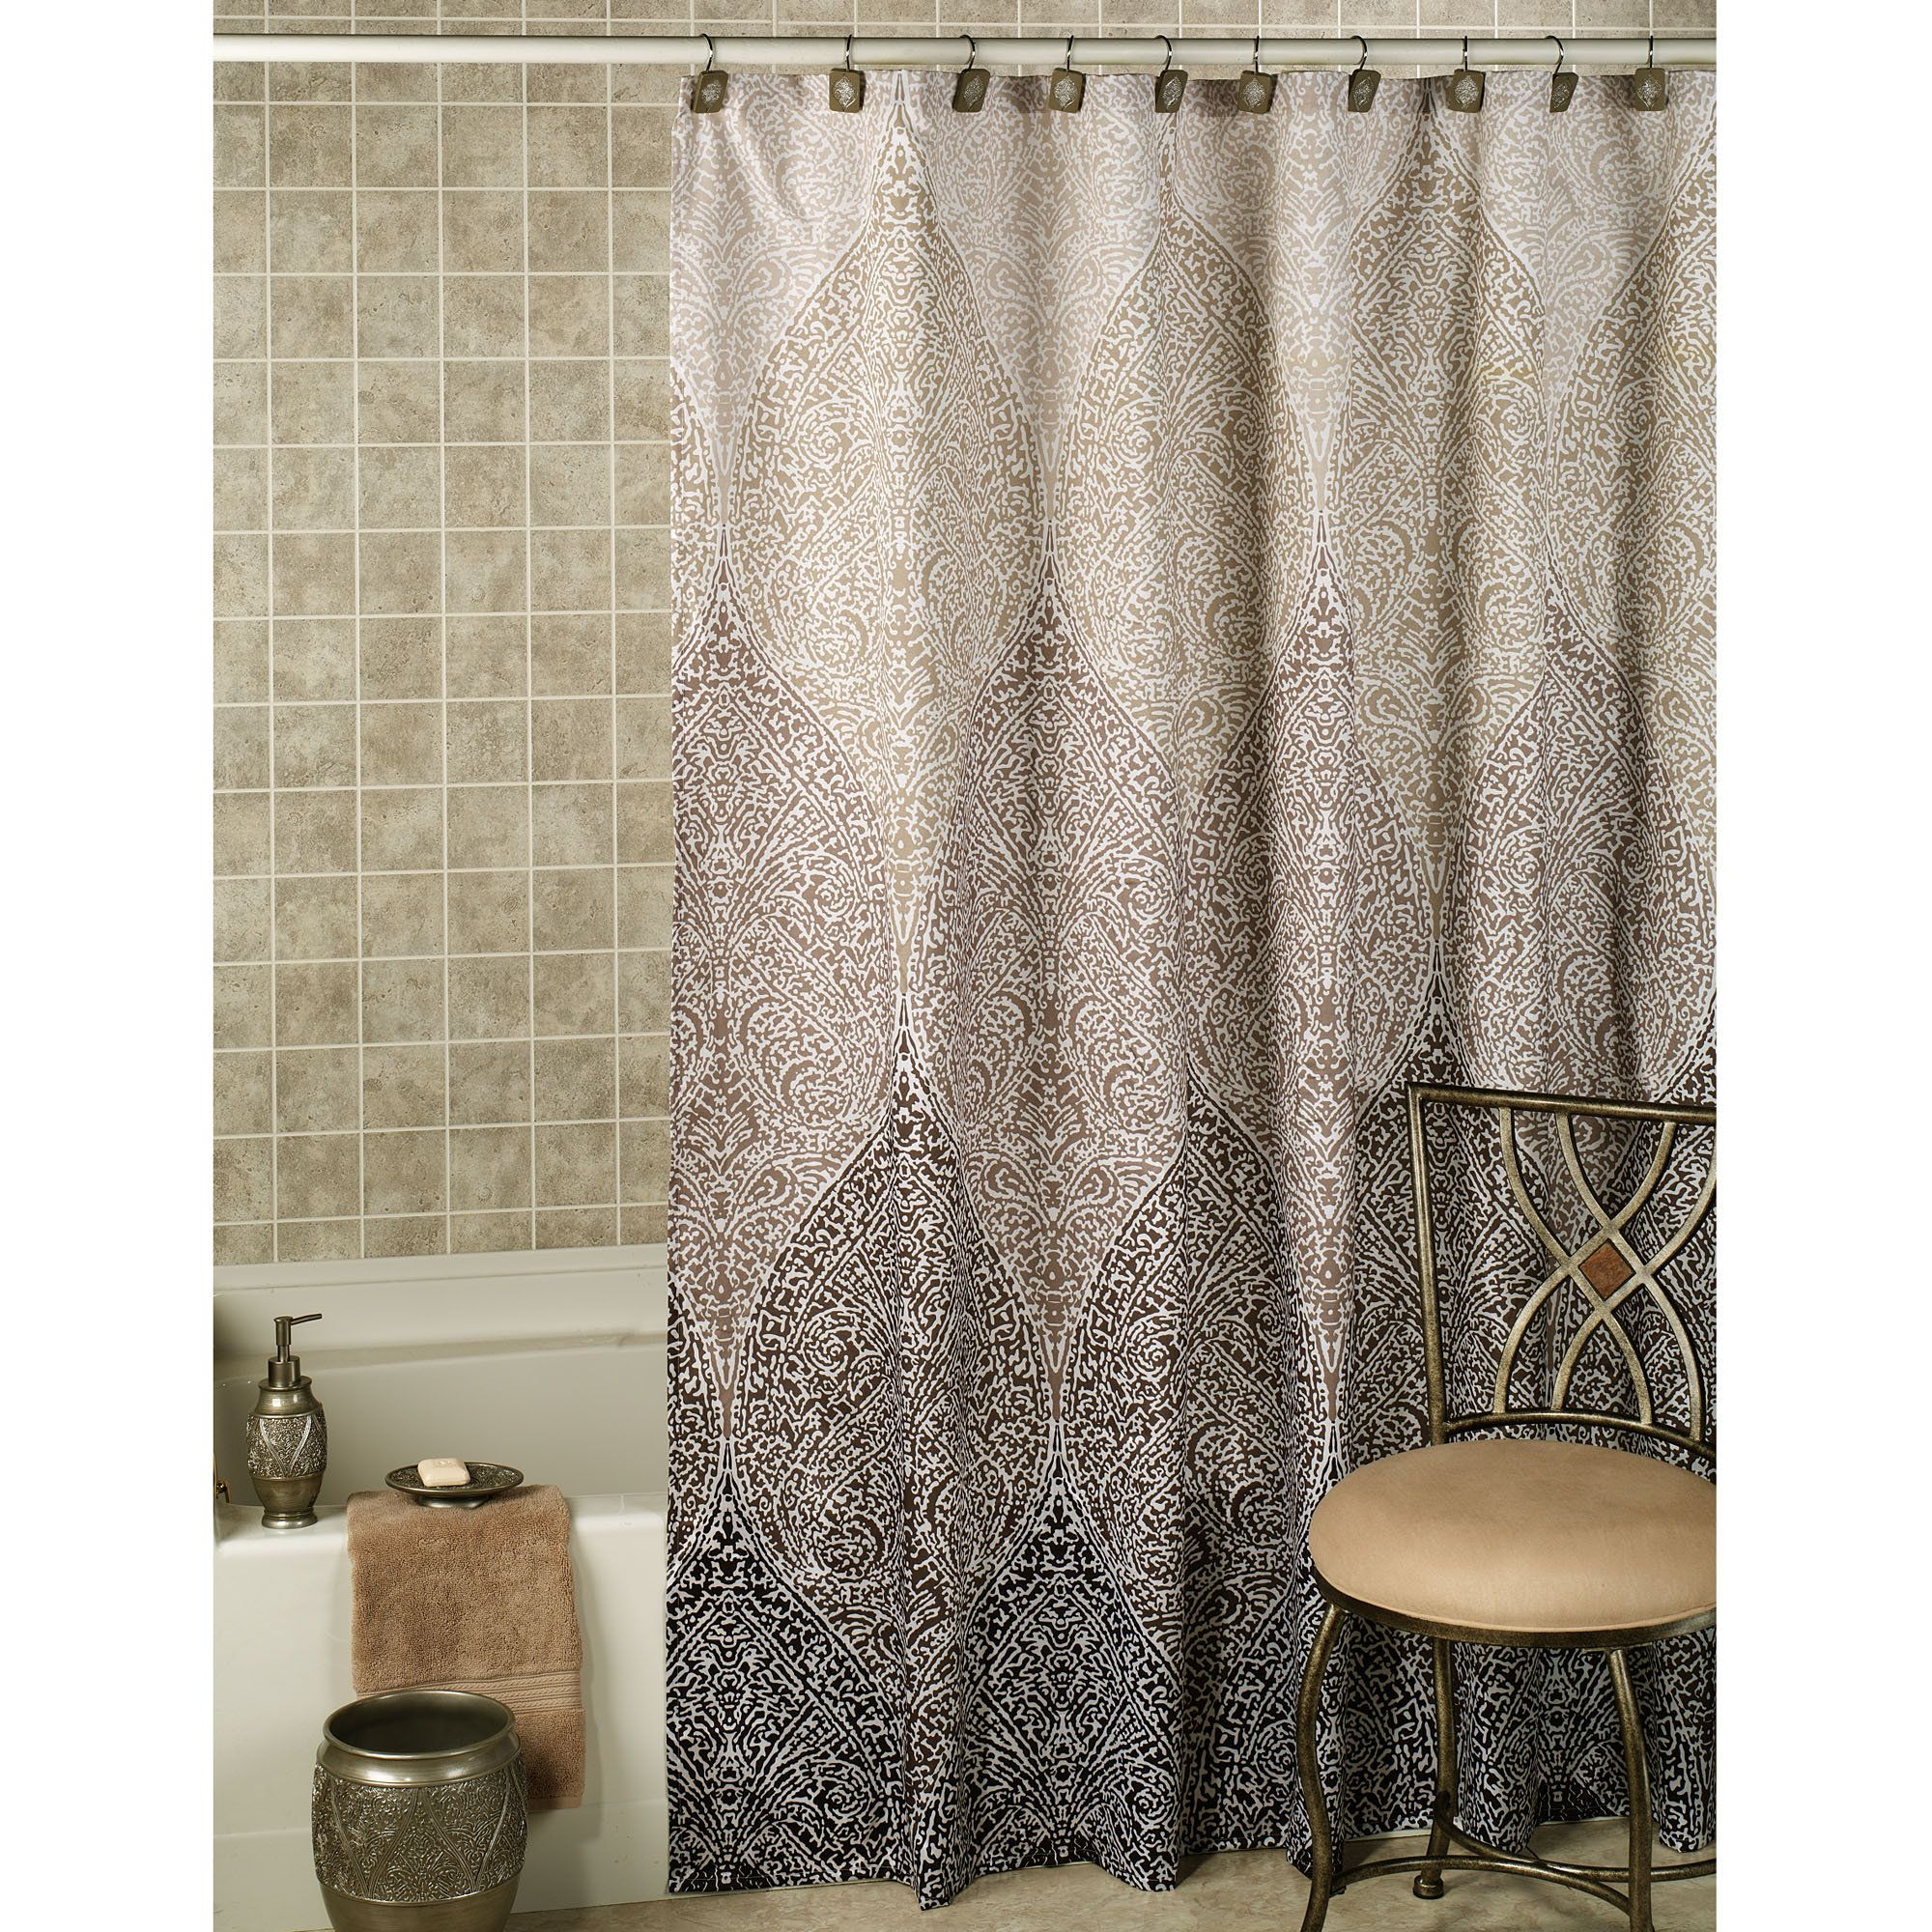 stall curtains co pcok shower r lavender